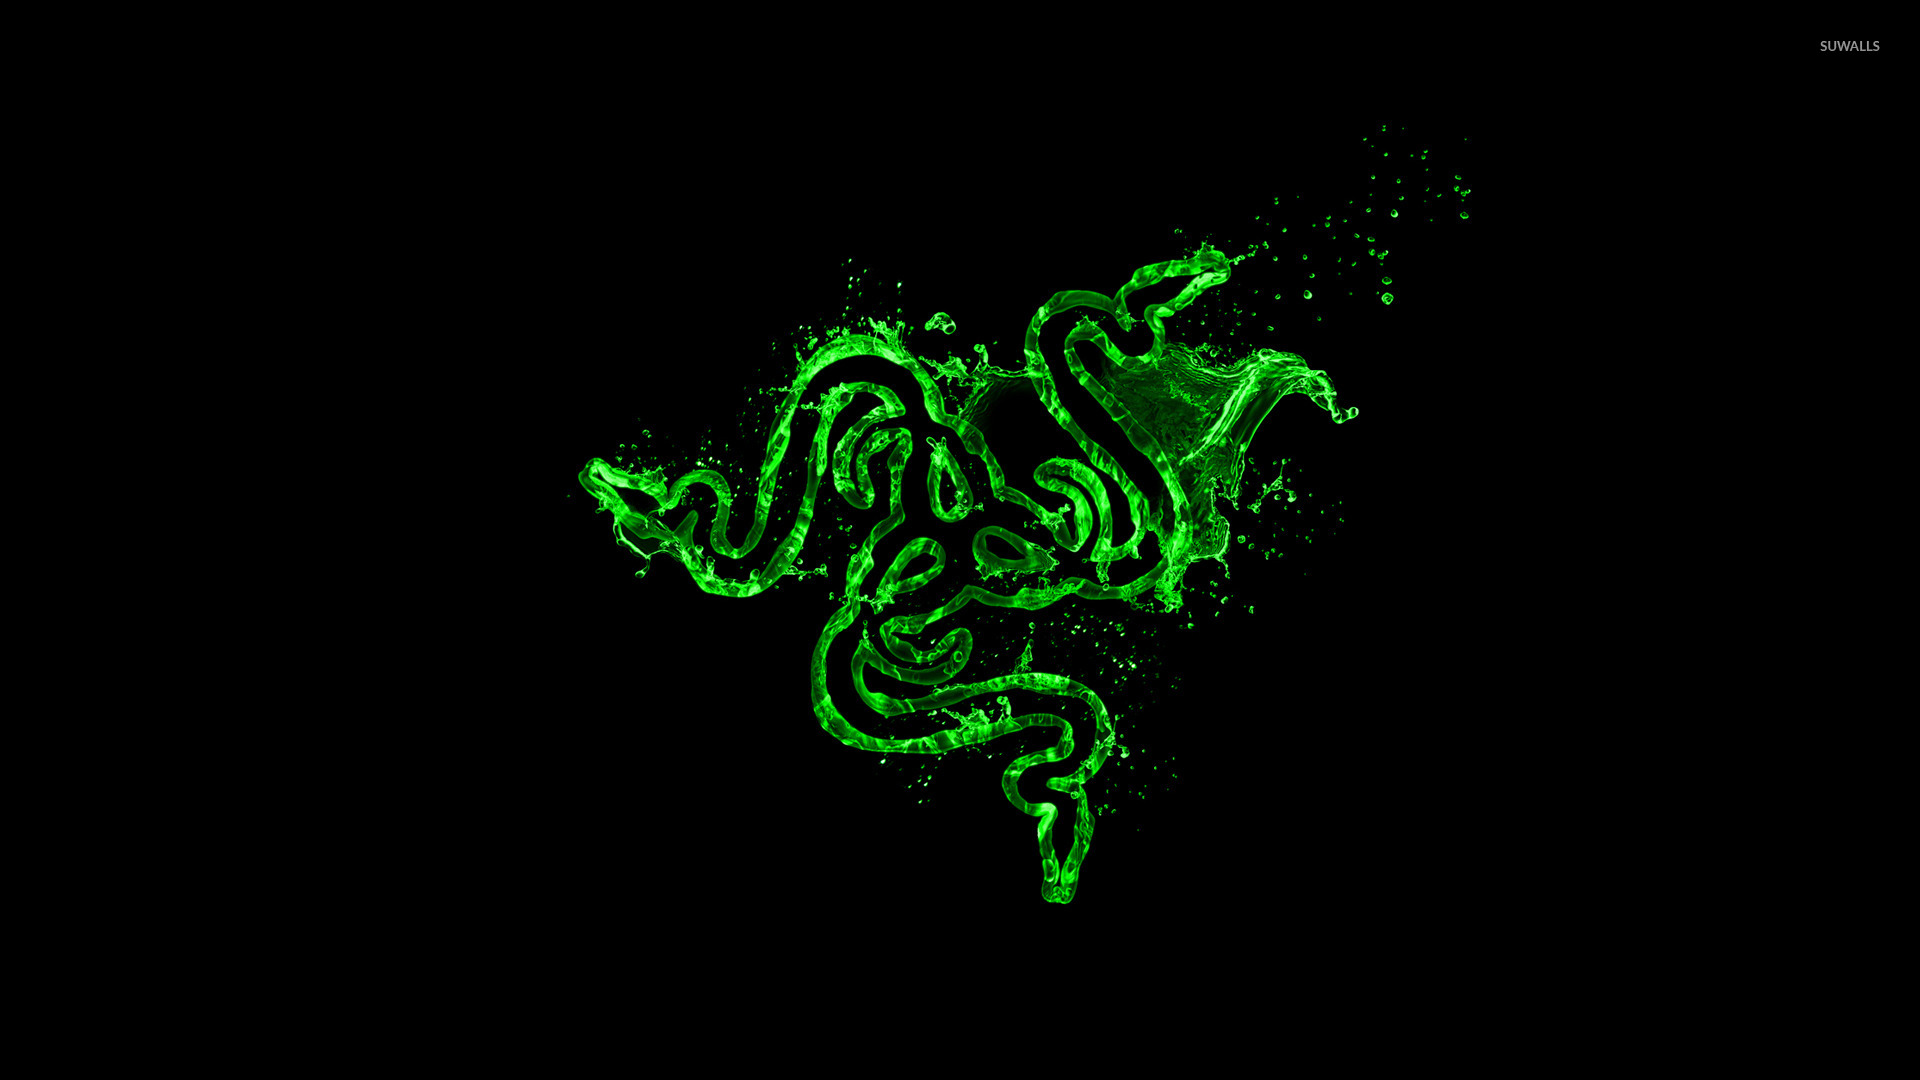 Razer Venom wallpaper